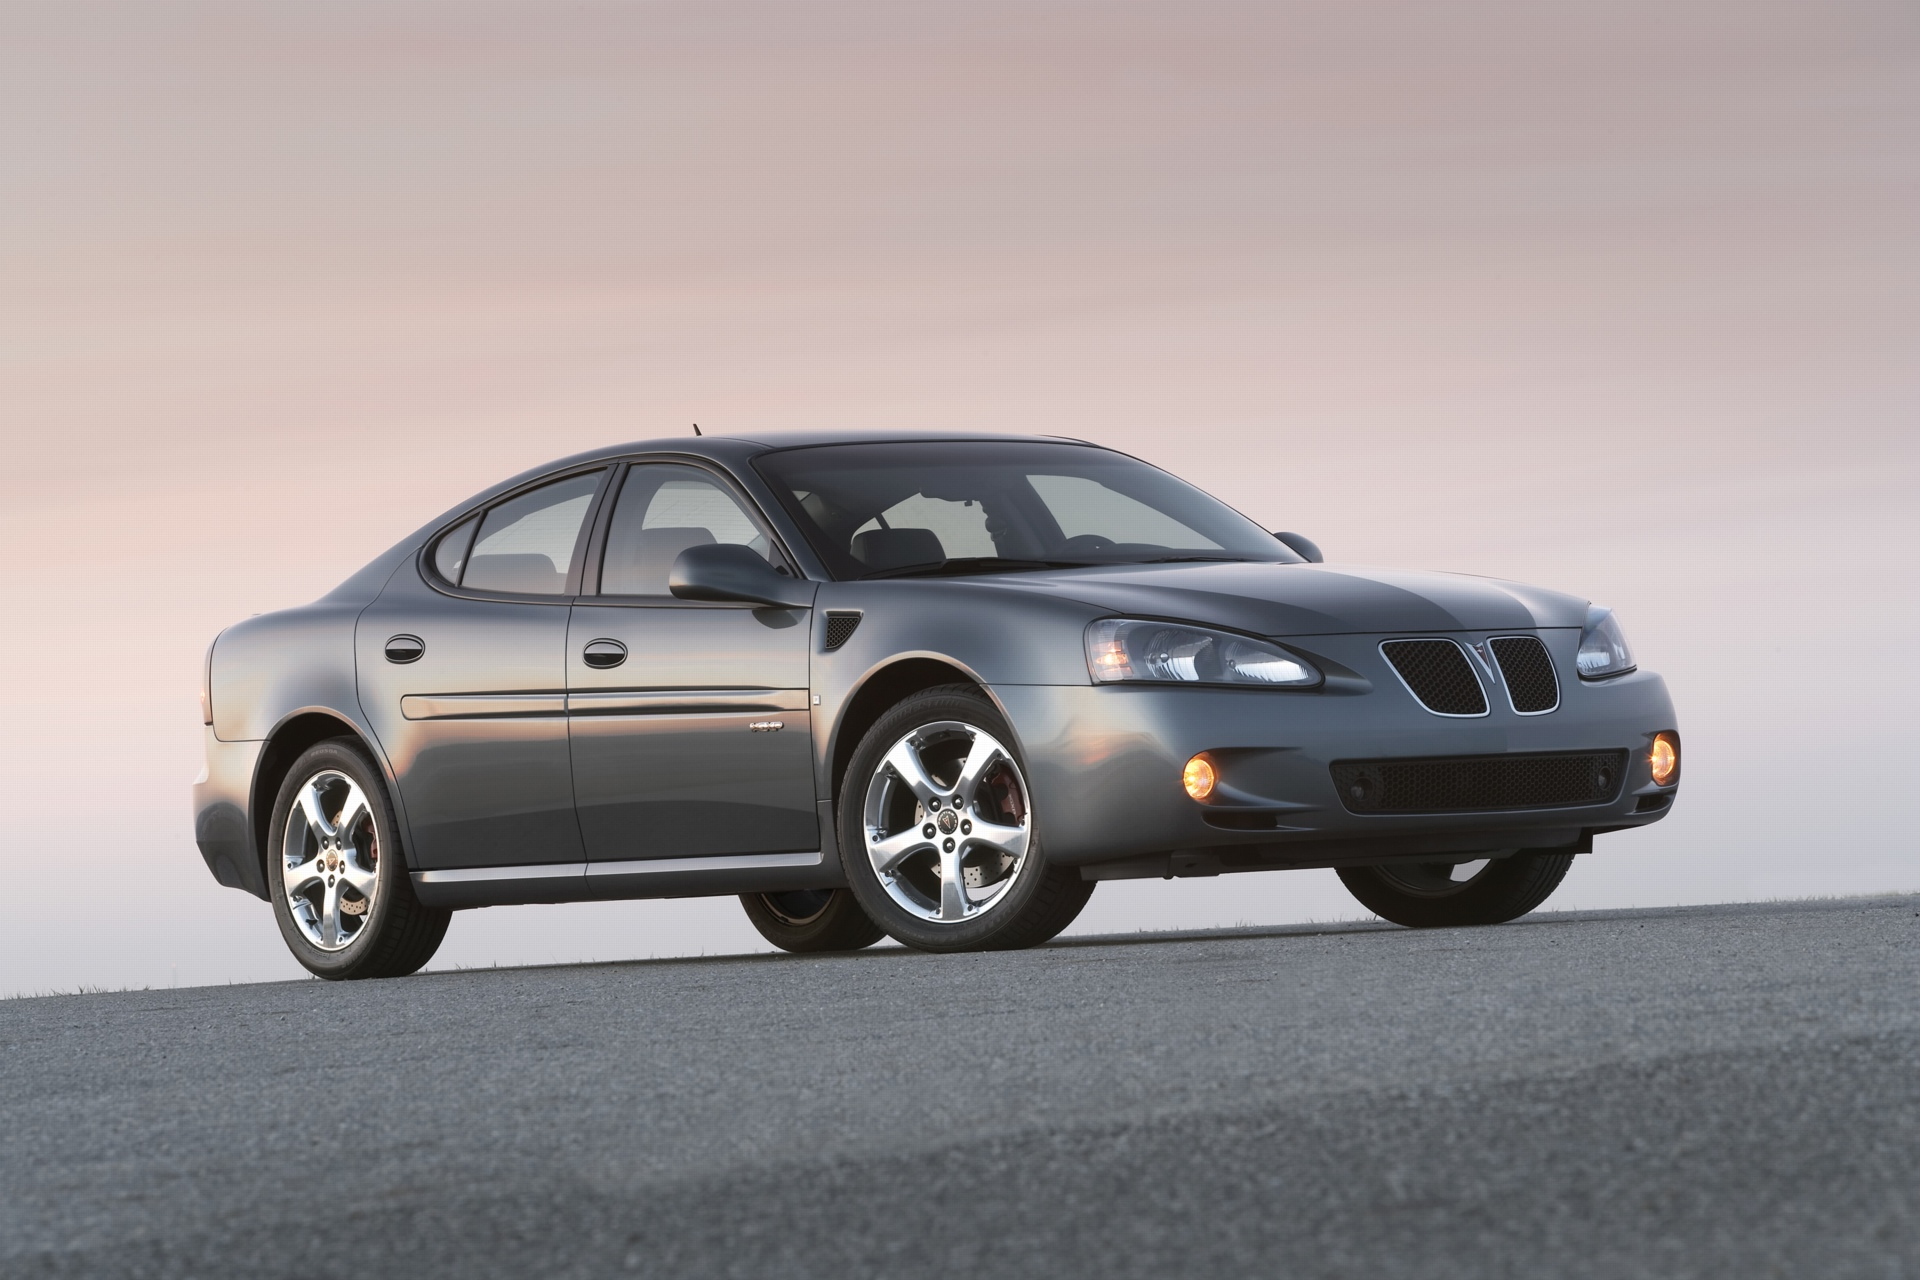 2008 Pontiac Grand Prix News And Information